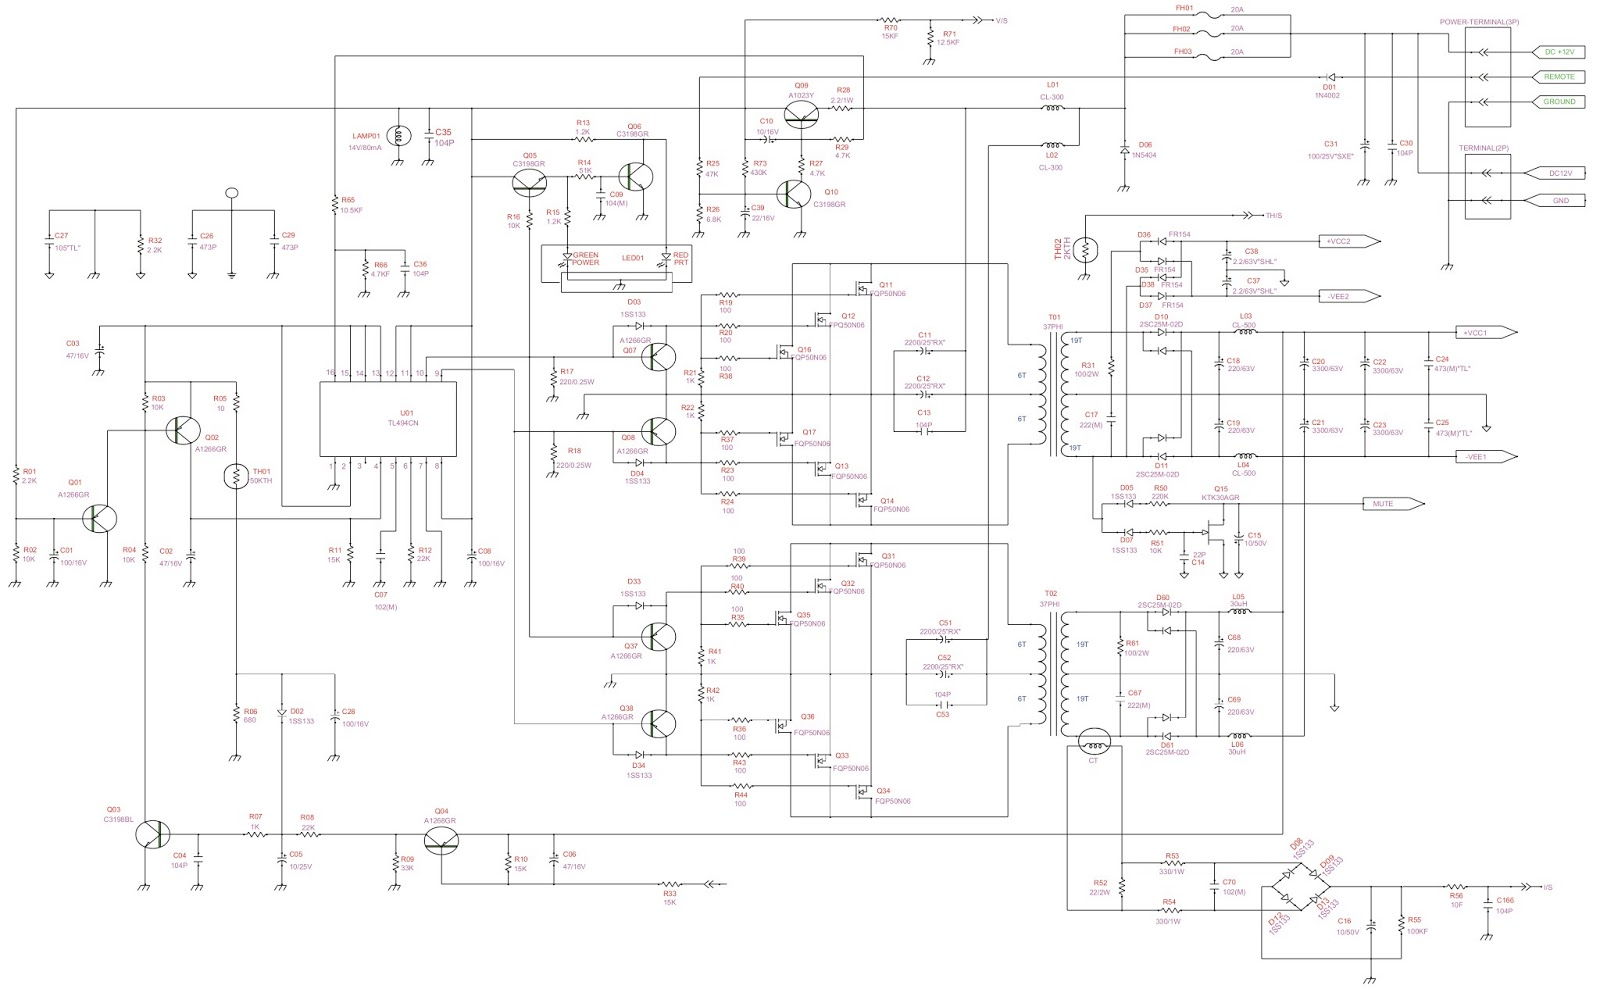 2 Bridged Speaker Wiring Diagram, 2, Free Engine Image For